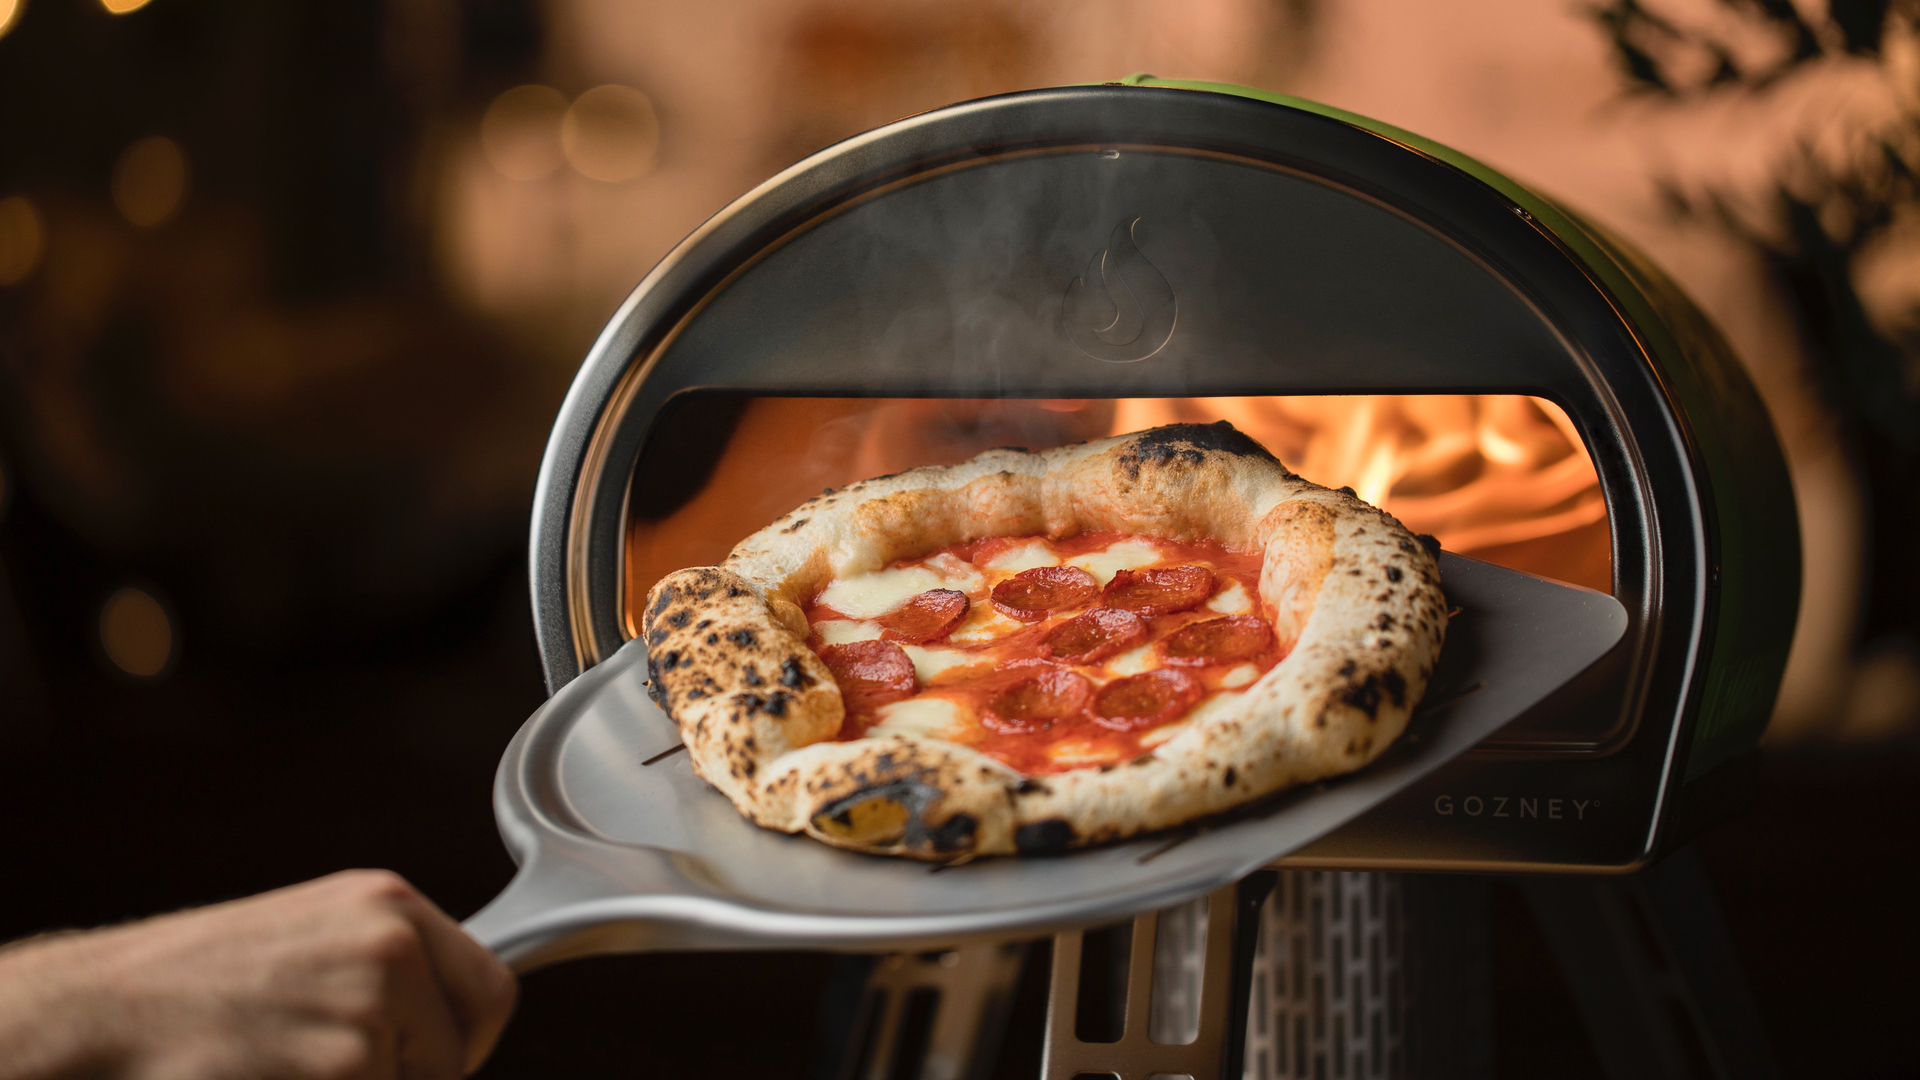 Best Pizza Oven 2021 The Best Outdoor Pizza Ovens For Your Garden T3